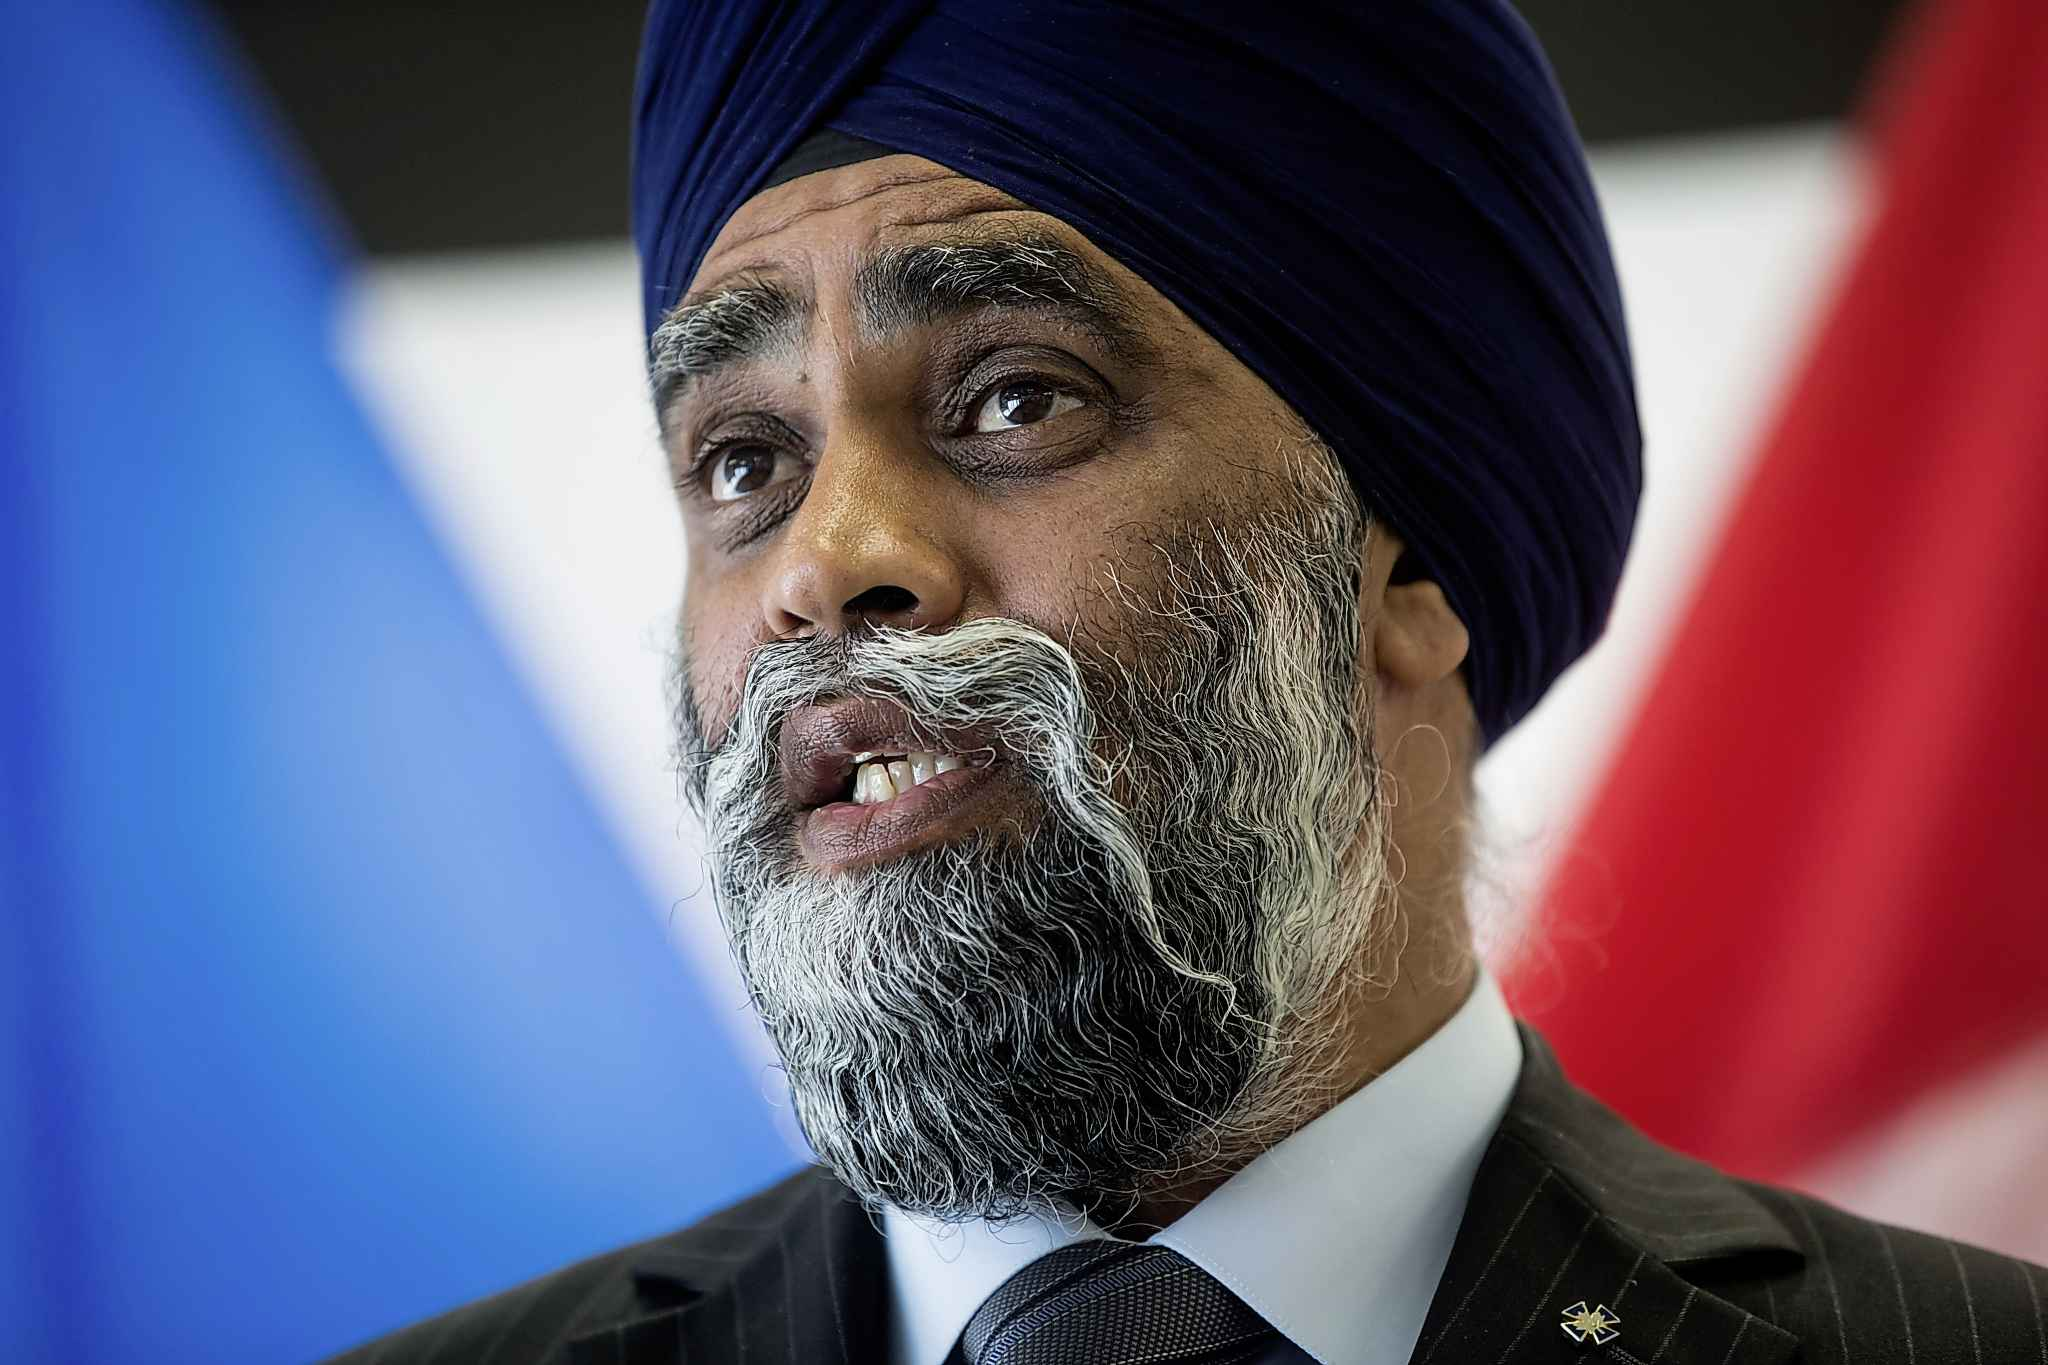 Defence Minister Harjit Sajjan: 'We need for all leaders to step up and take very aggressive actions to make sure these types of behaviours do not become even more prevalent'